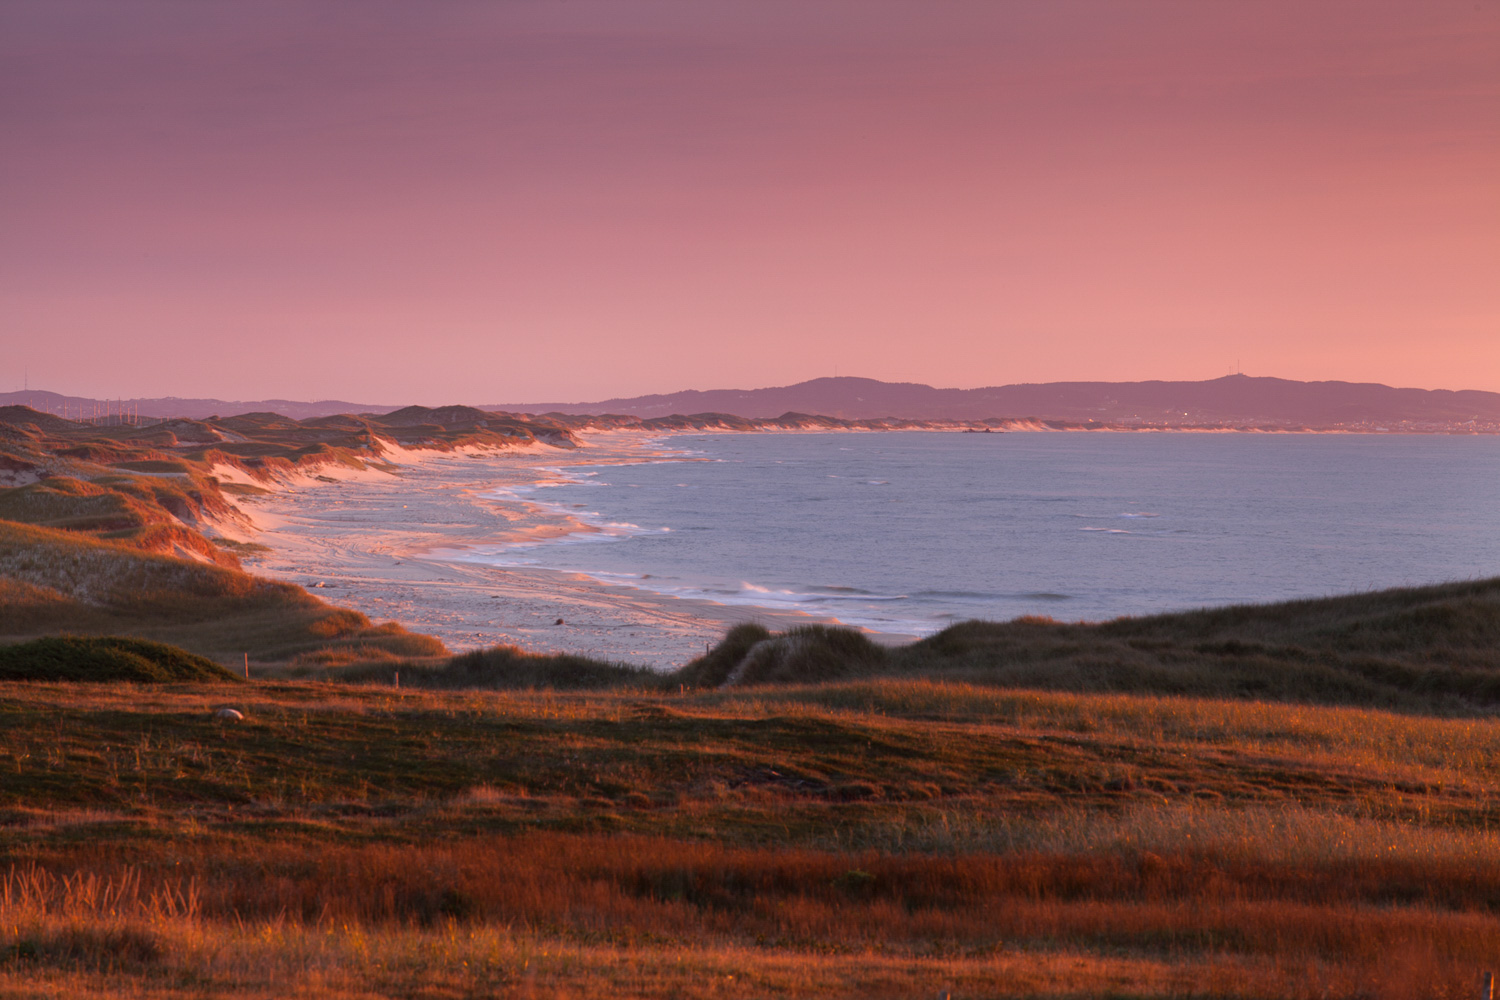 Landscape photo in the Magdalen Islands - view from Pointe-aux-Loups